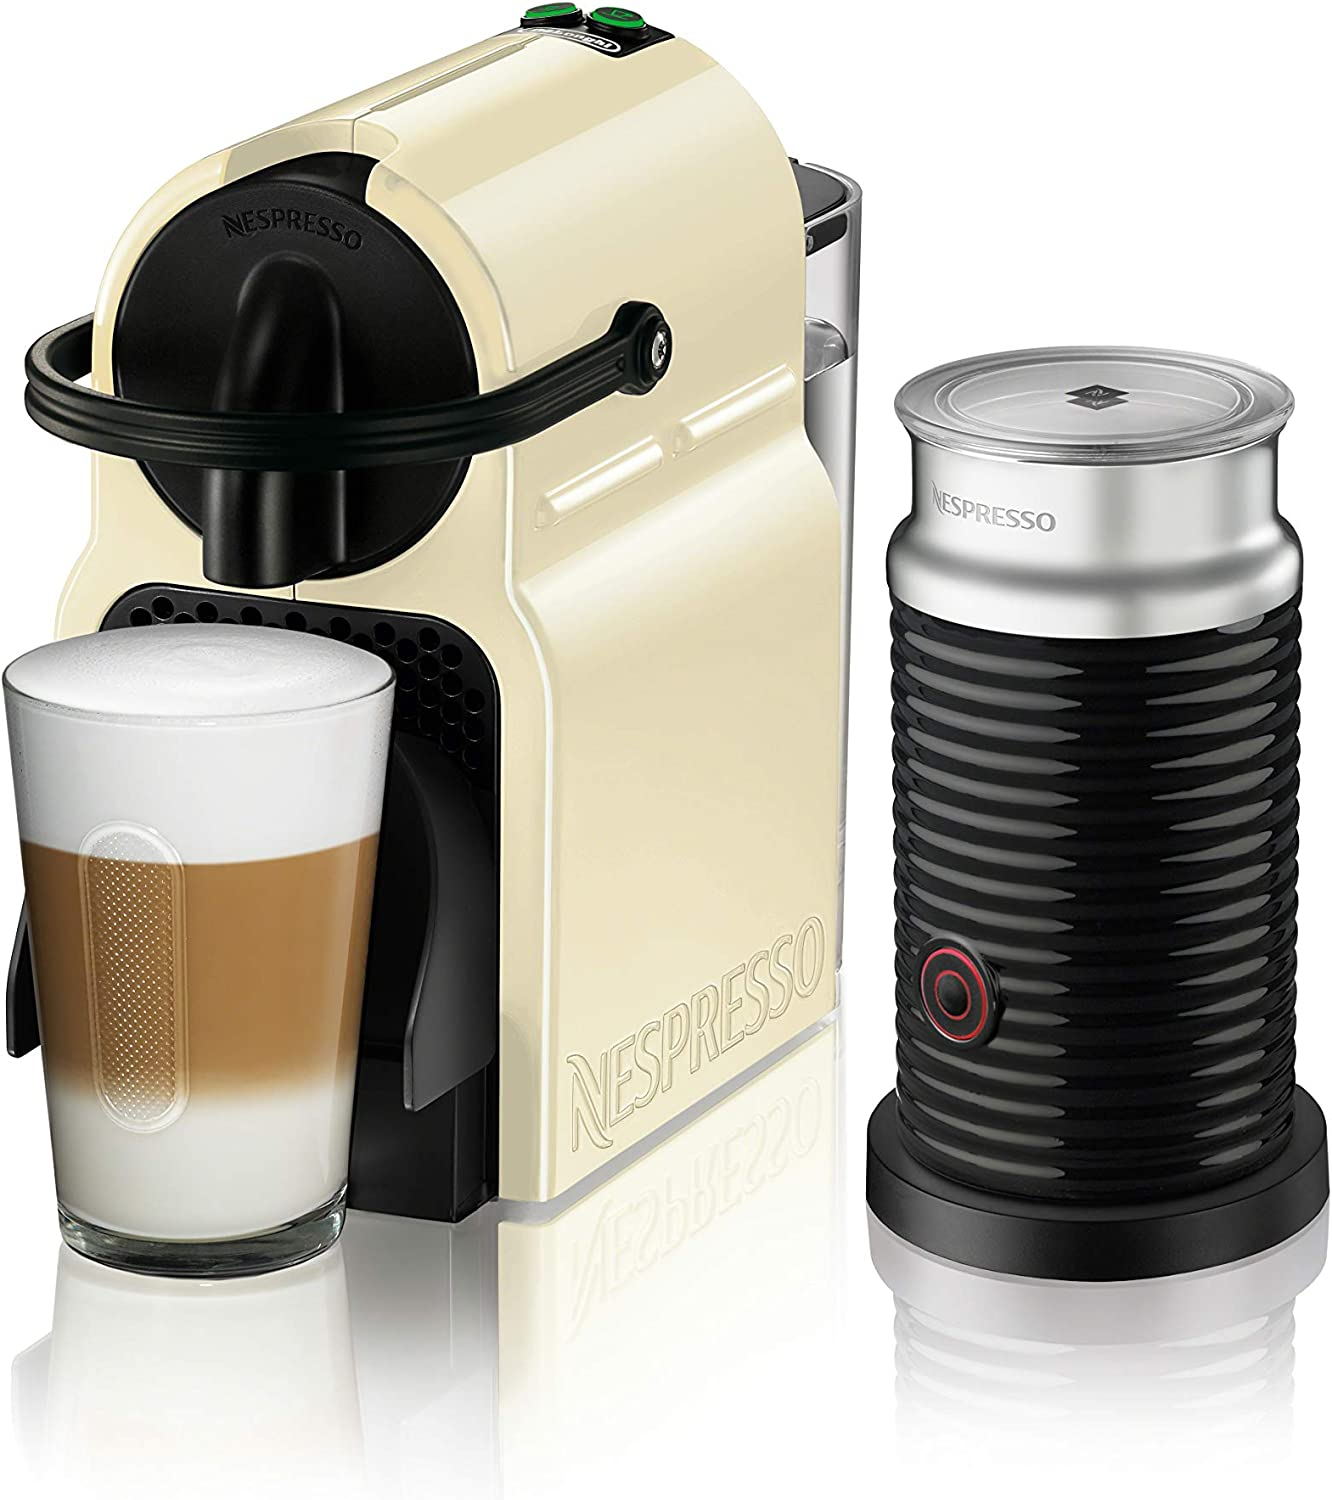 Nespresso by De'Longhi Nespresso Inissia Original Espresso Machine Bundle with Aeroccino Milk Frother by De'Longhi, Creamy White